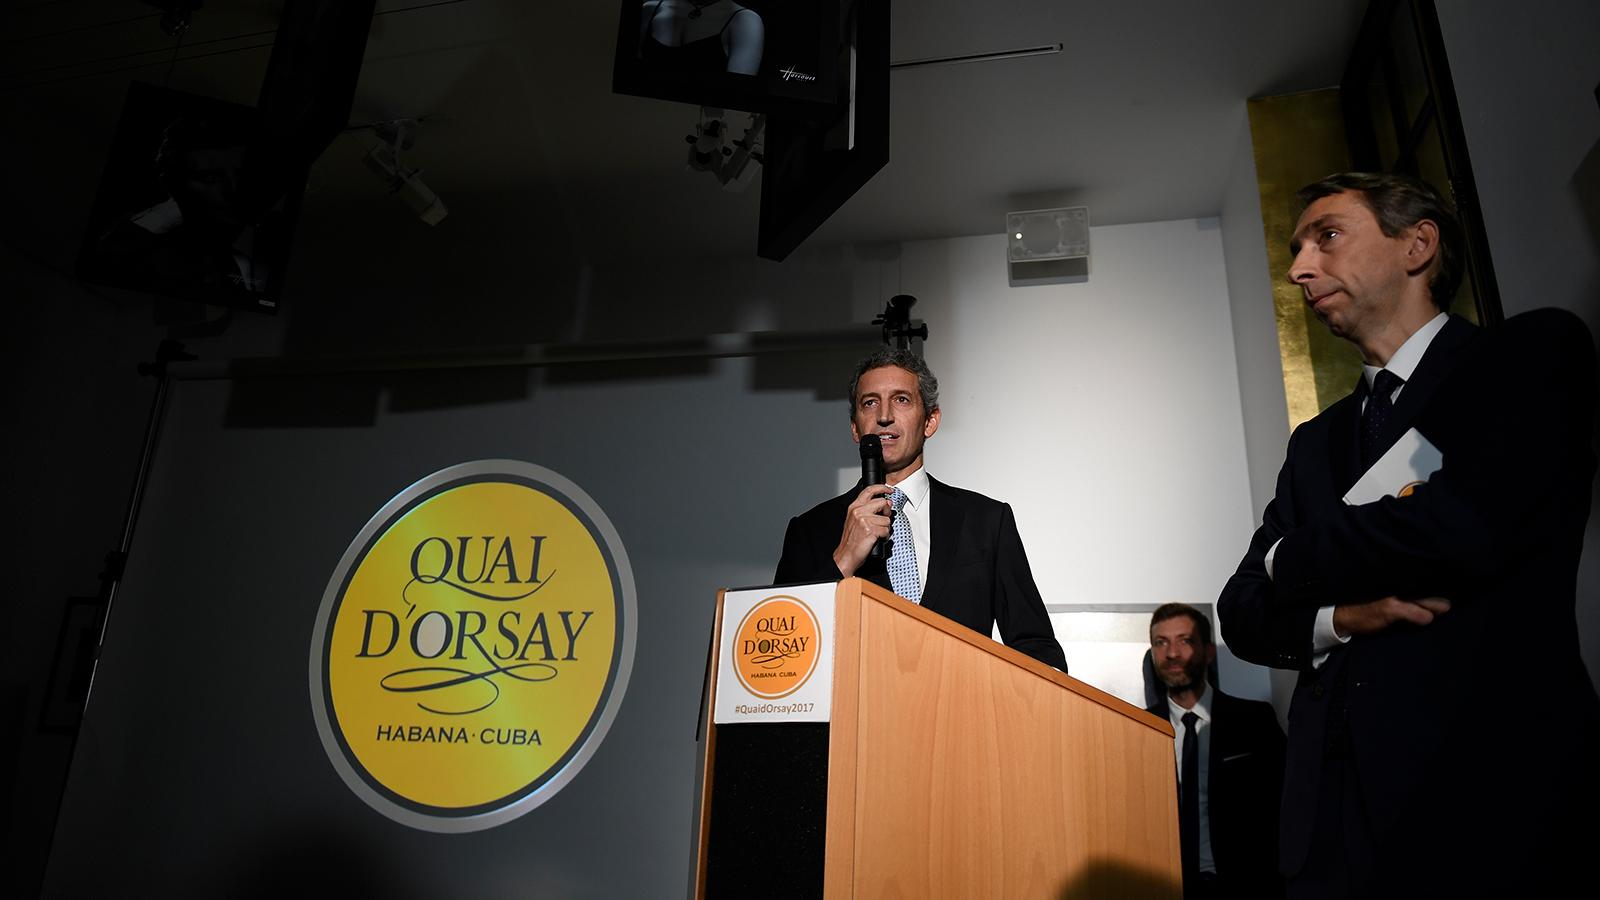 Luís Sánchez-Harguindey, co-president of Habanos S.A., speaking at the Quai d'Orsay event in Paris.